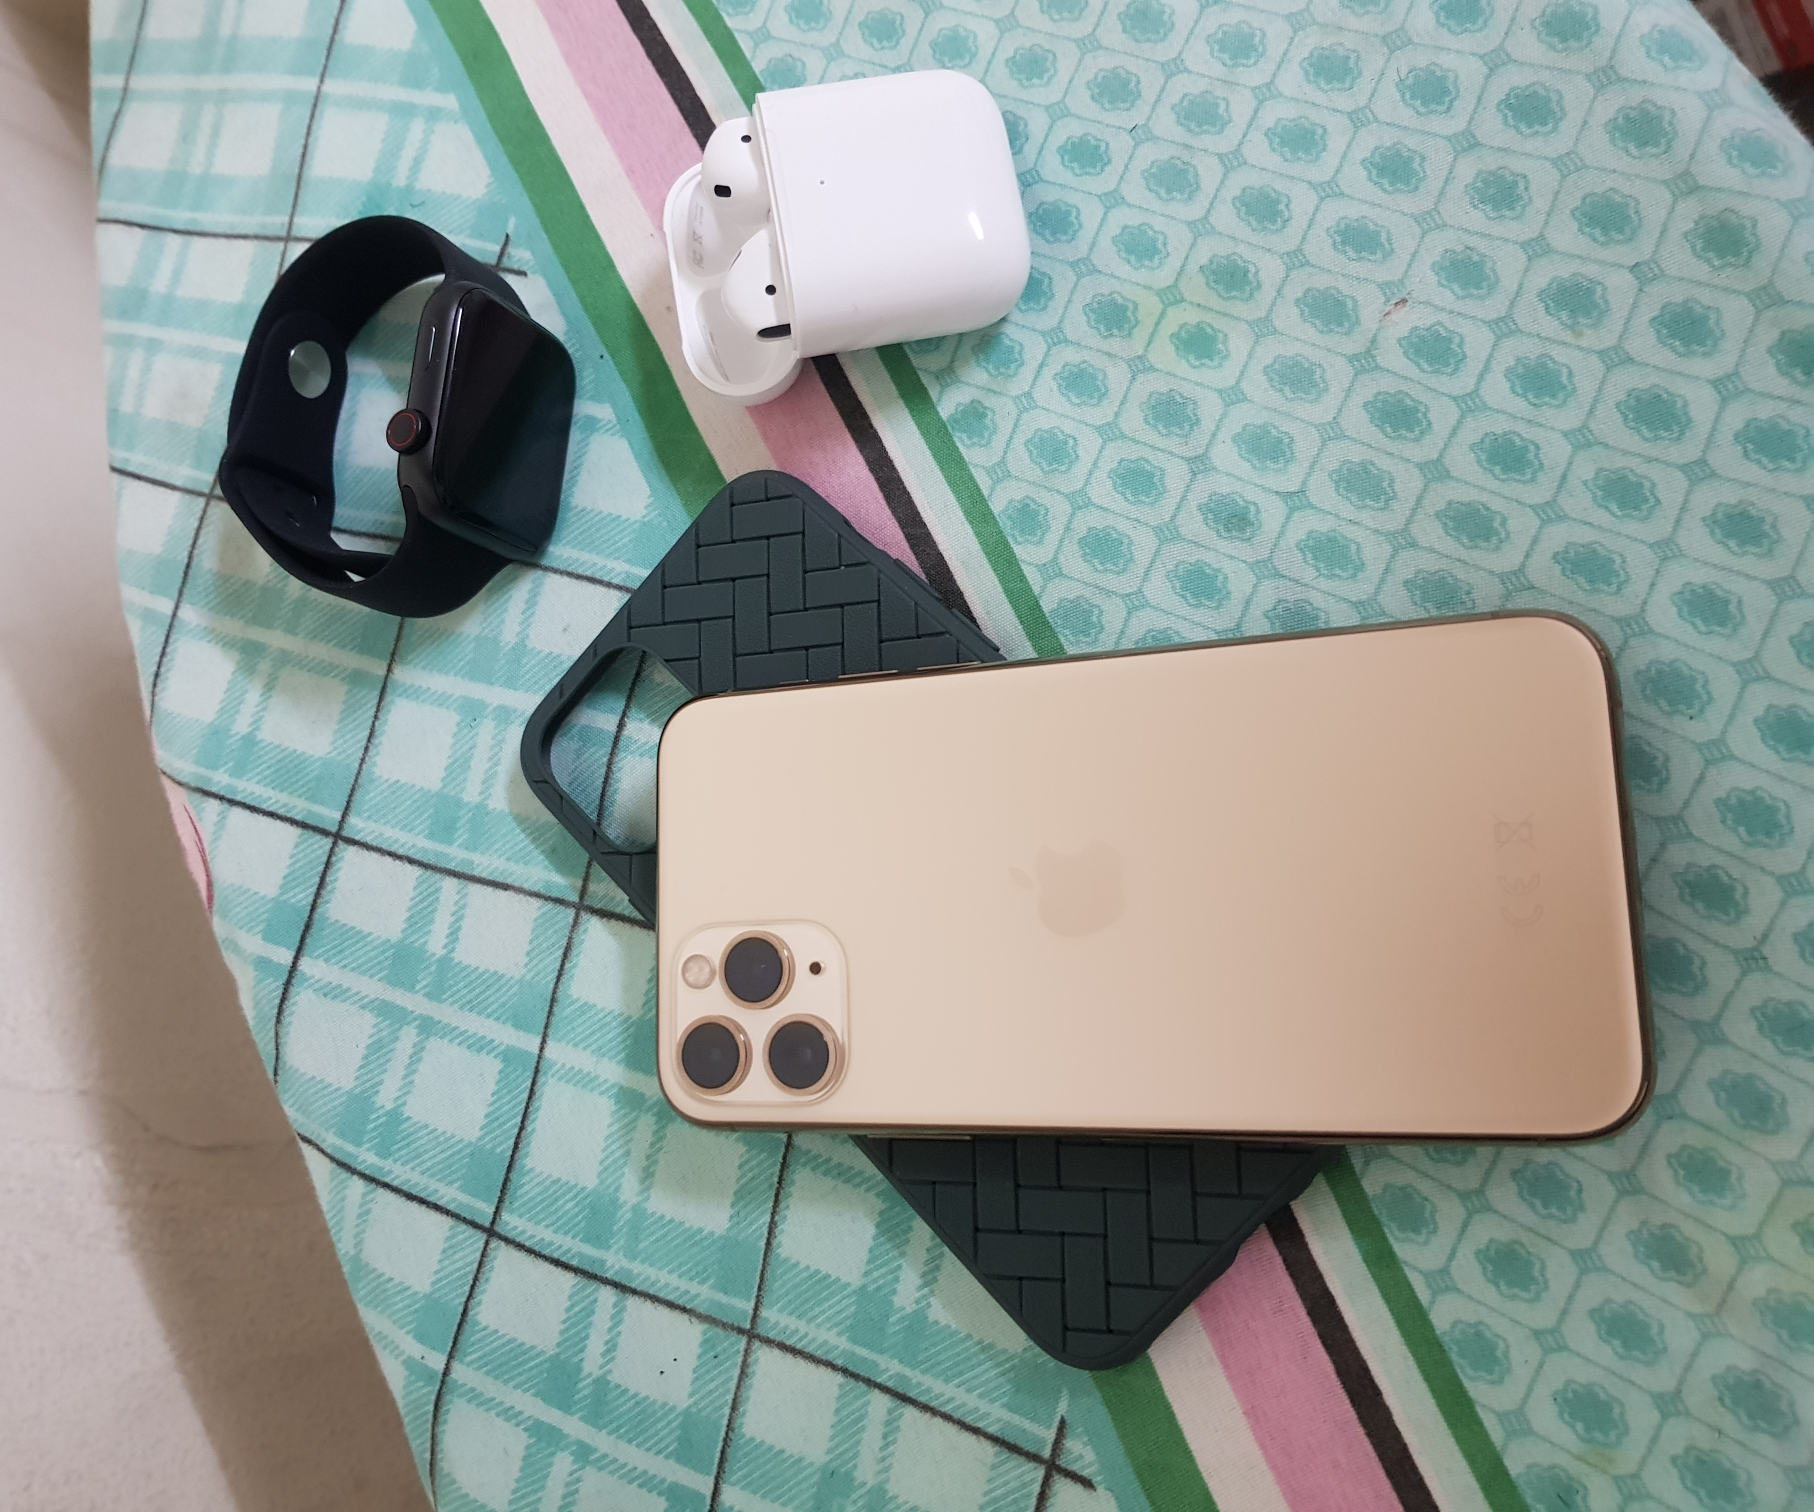 İphone 11 pro smartwatch and airpods